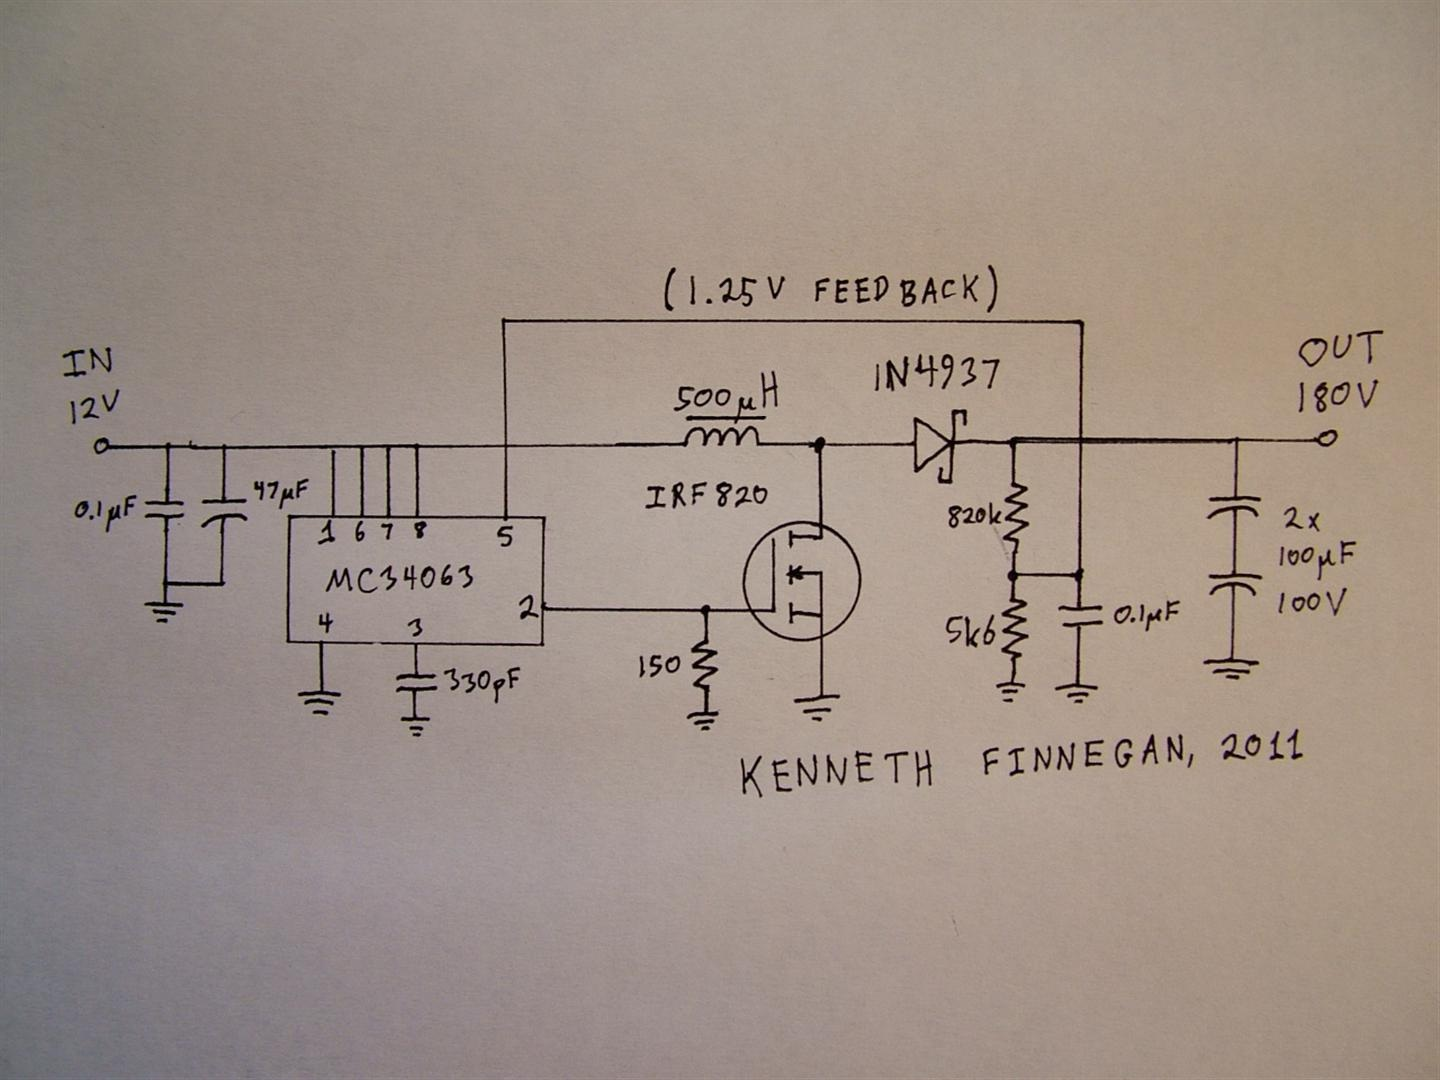 The Life Of Kenneth Avr Nixie Tube Thermometer Schematic My 6 Digit Clock Here Are Some Photos An Error Occurred